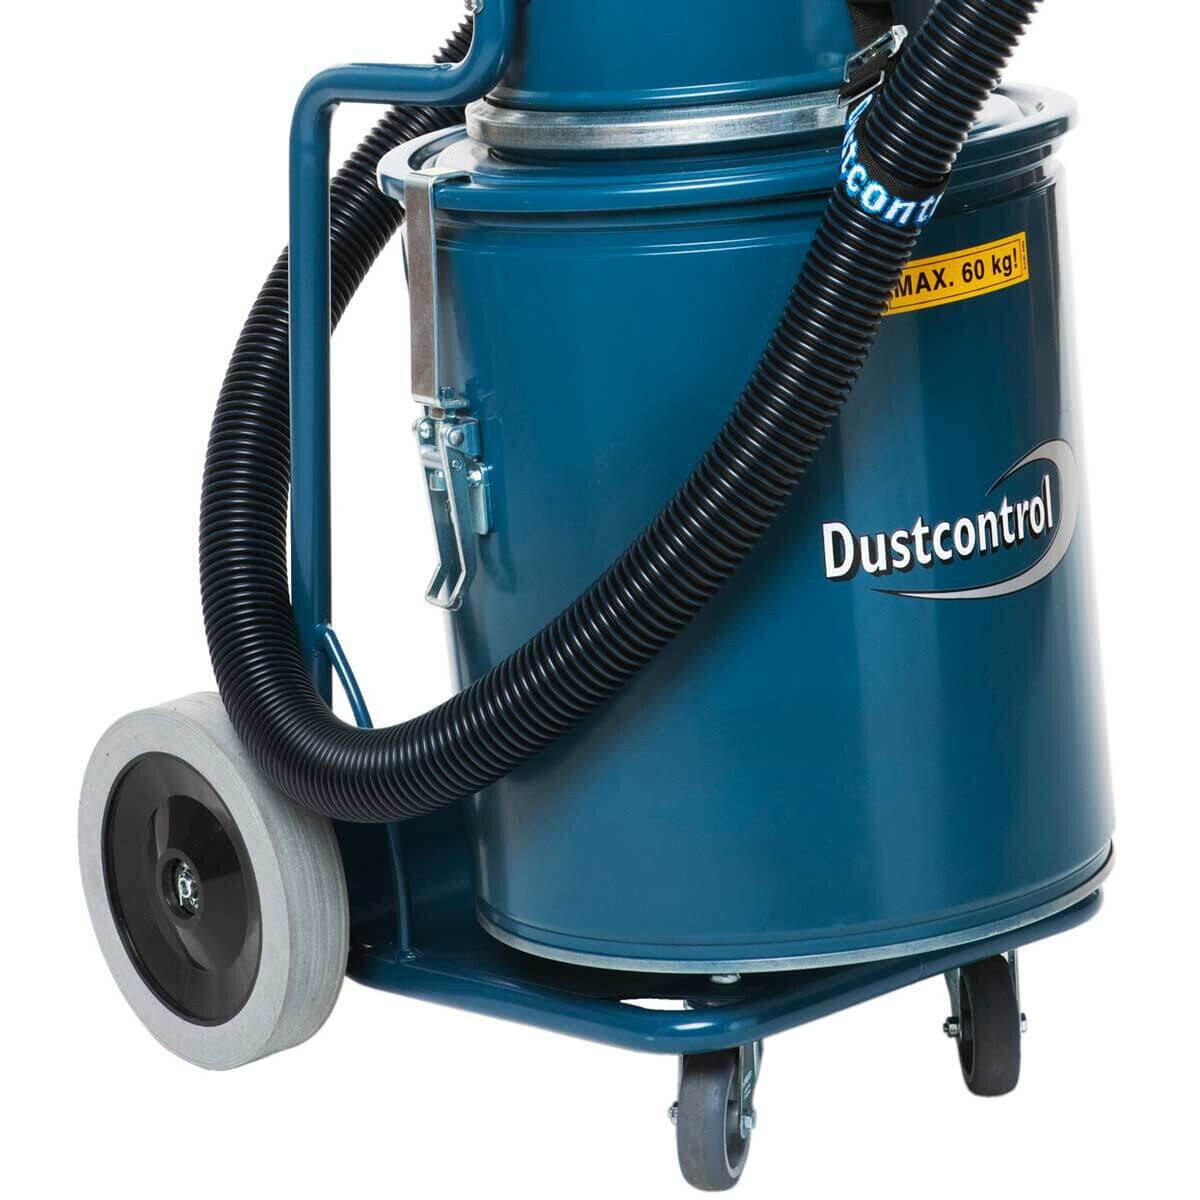 DC 2900A Mobile Dust Extractor